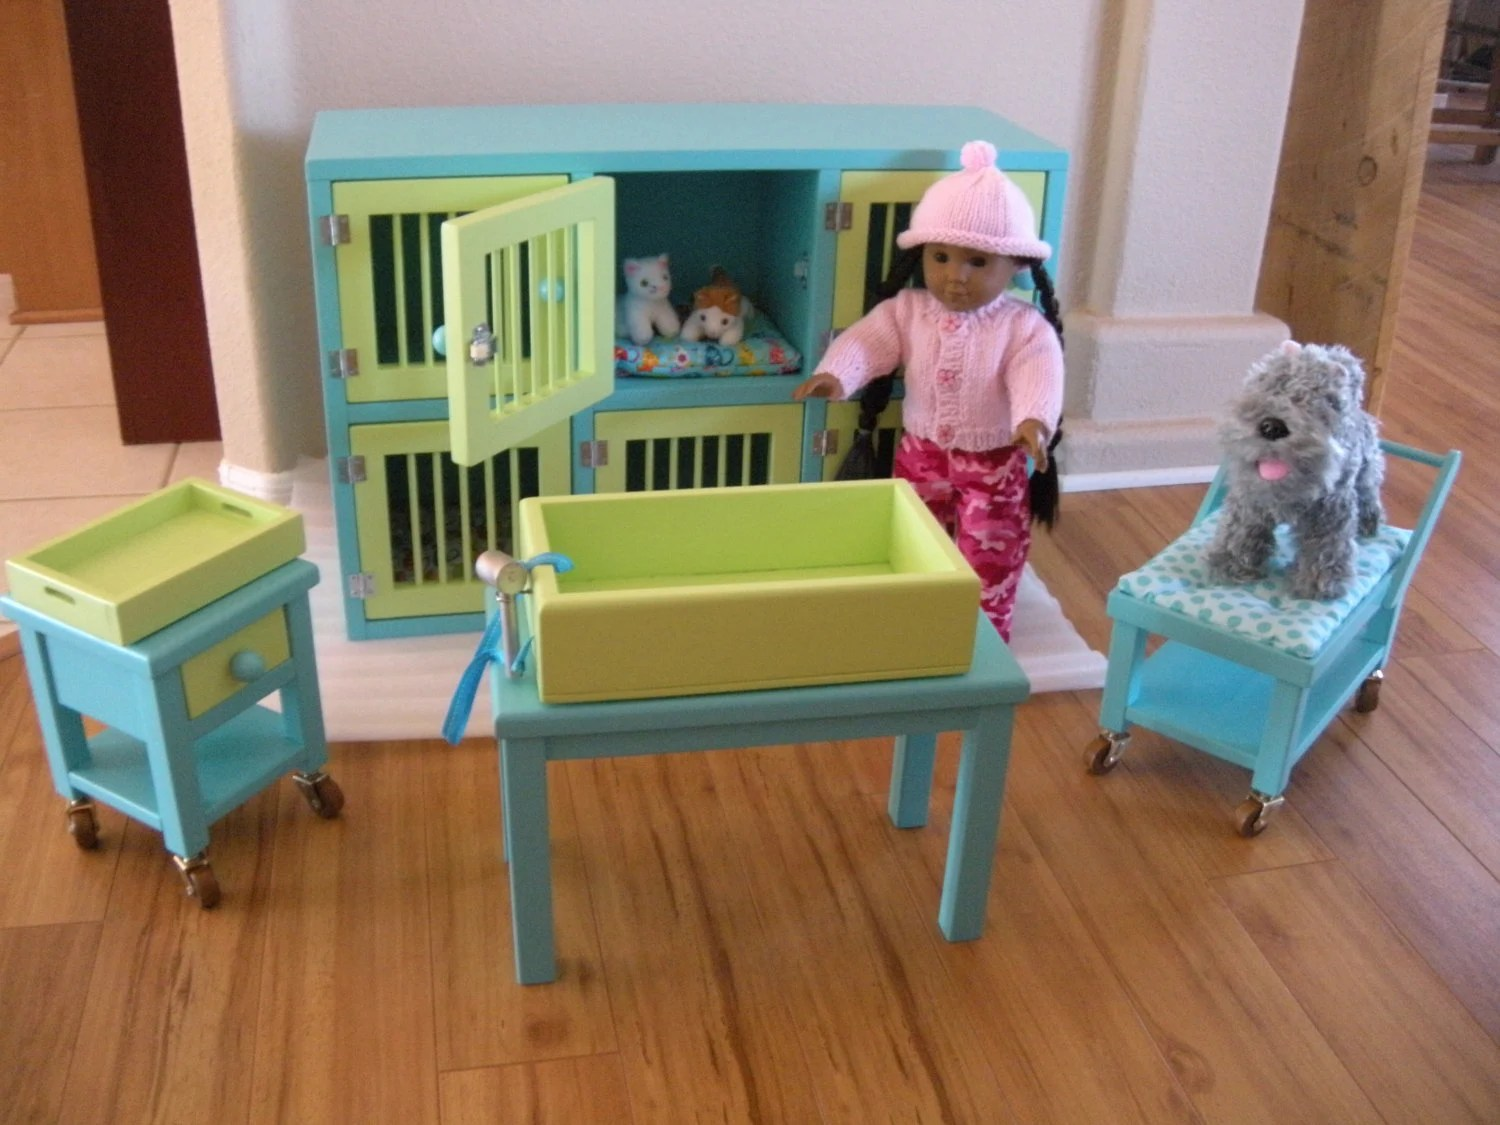 american girl doll chairs intex inflatable pull out chair twin bed pet hospital boarding set for vet